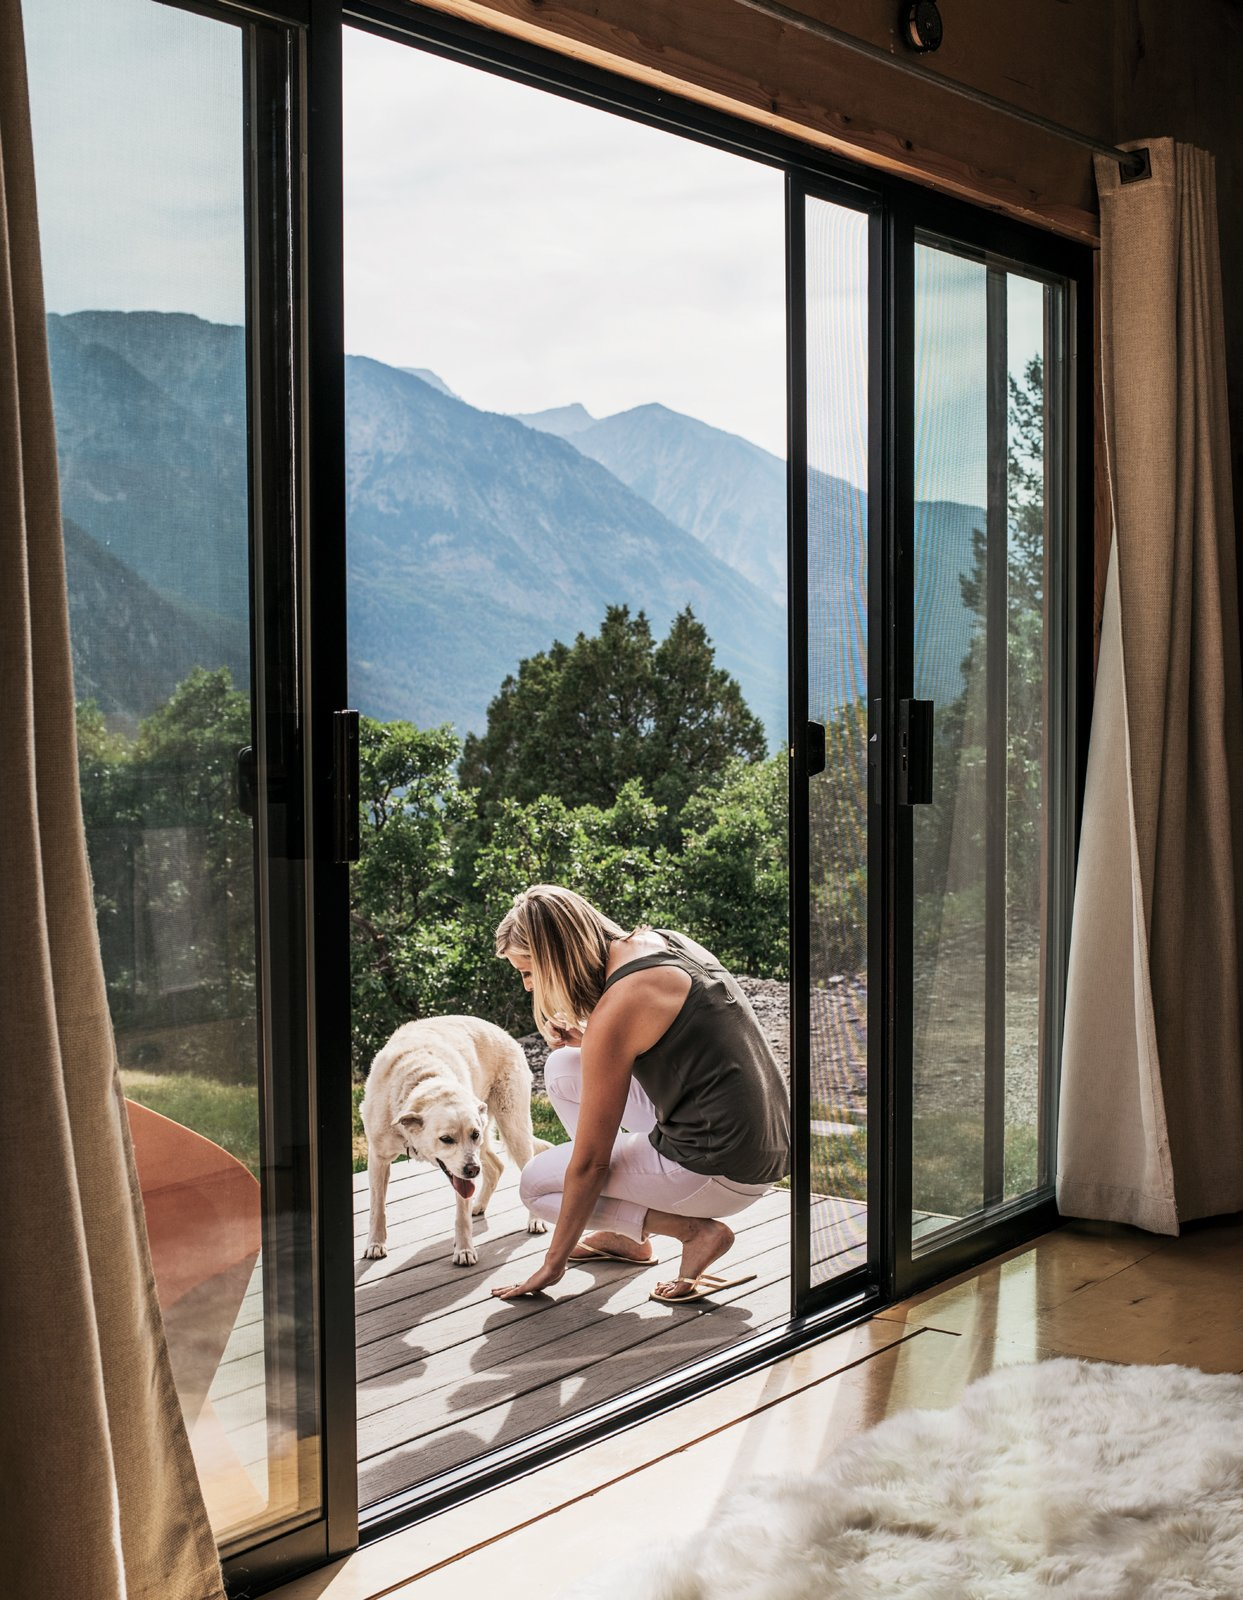 """Milgard sliding doors were added with the future in mind. """"We really wanted it to feel big since we planned to live in it full-time,"""" Brian says."""